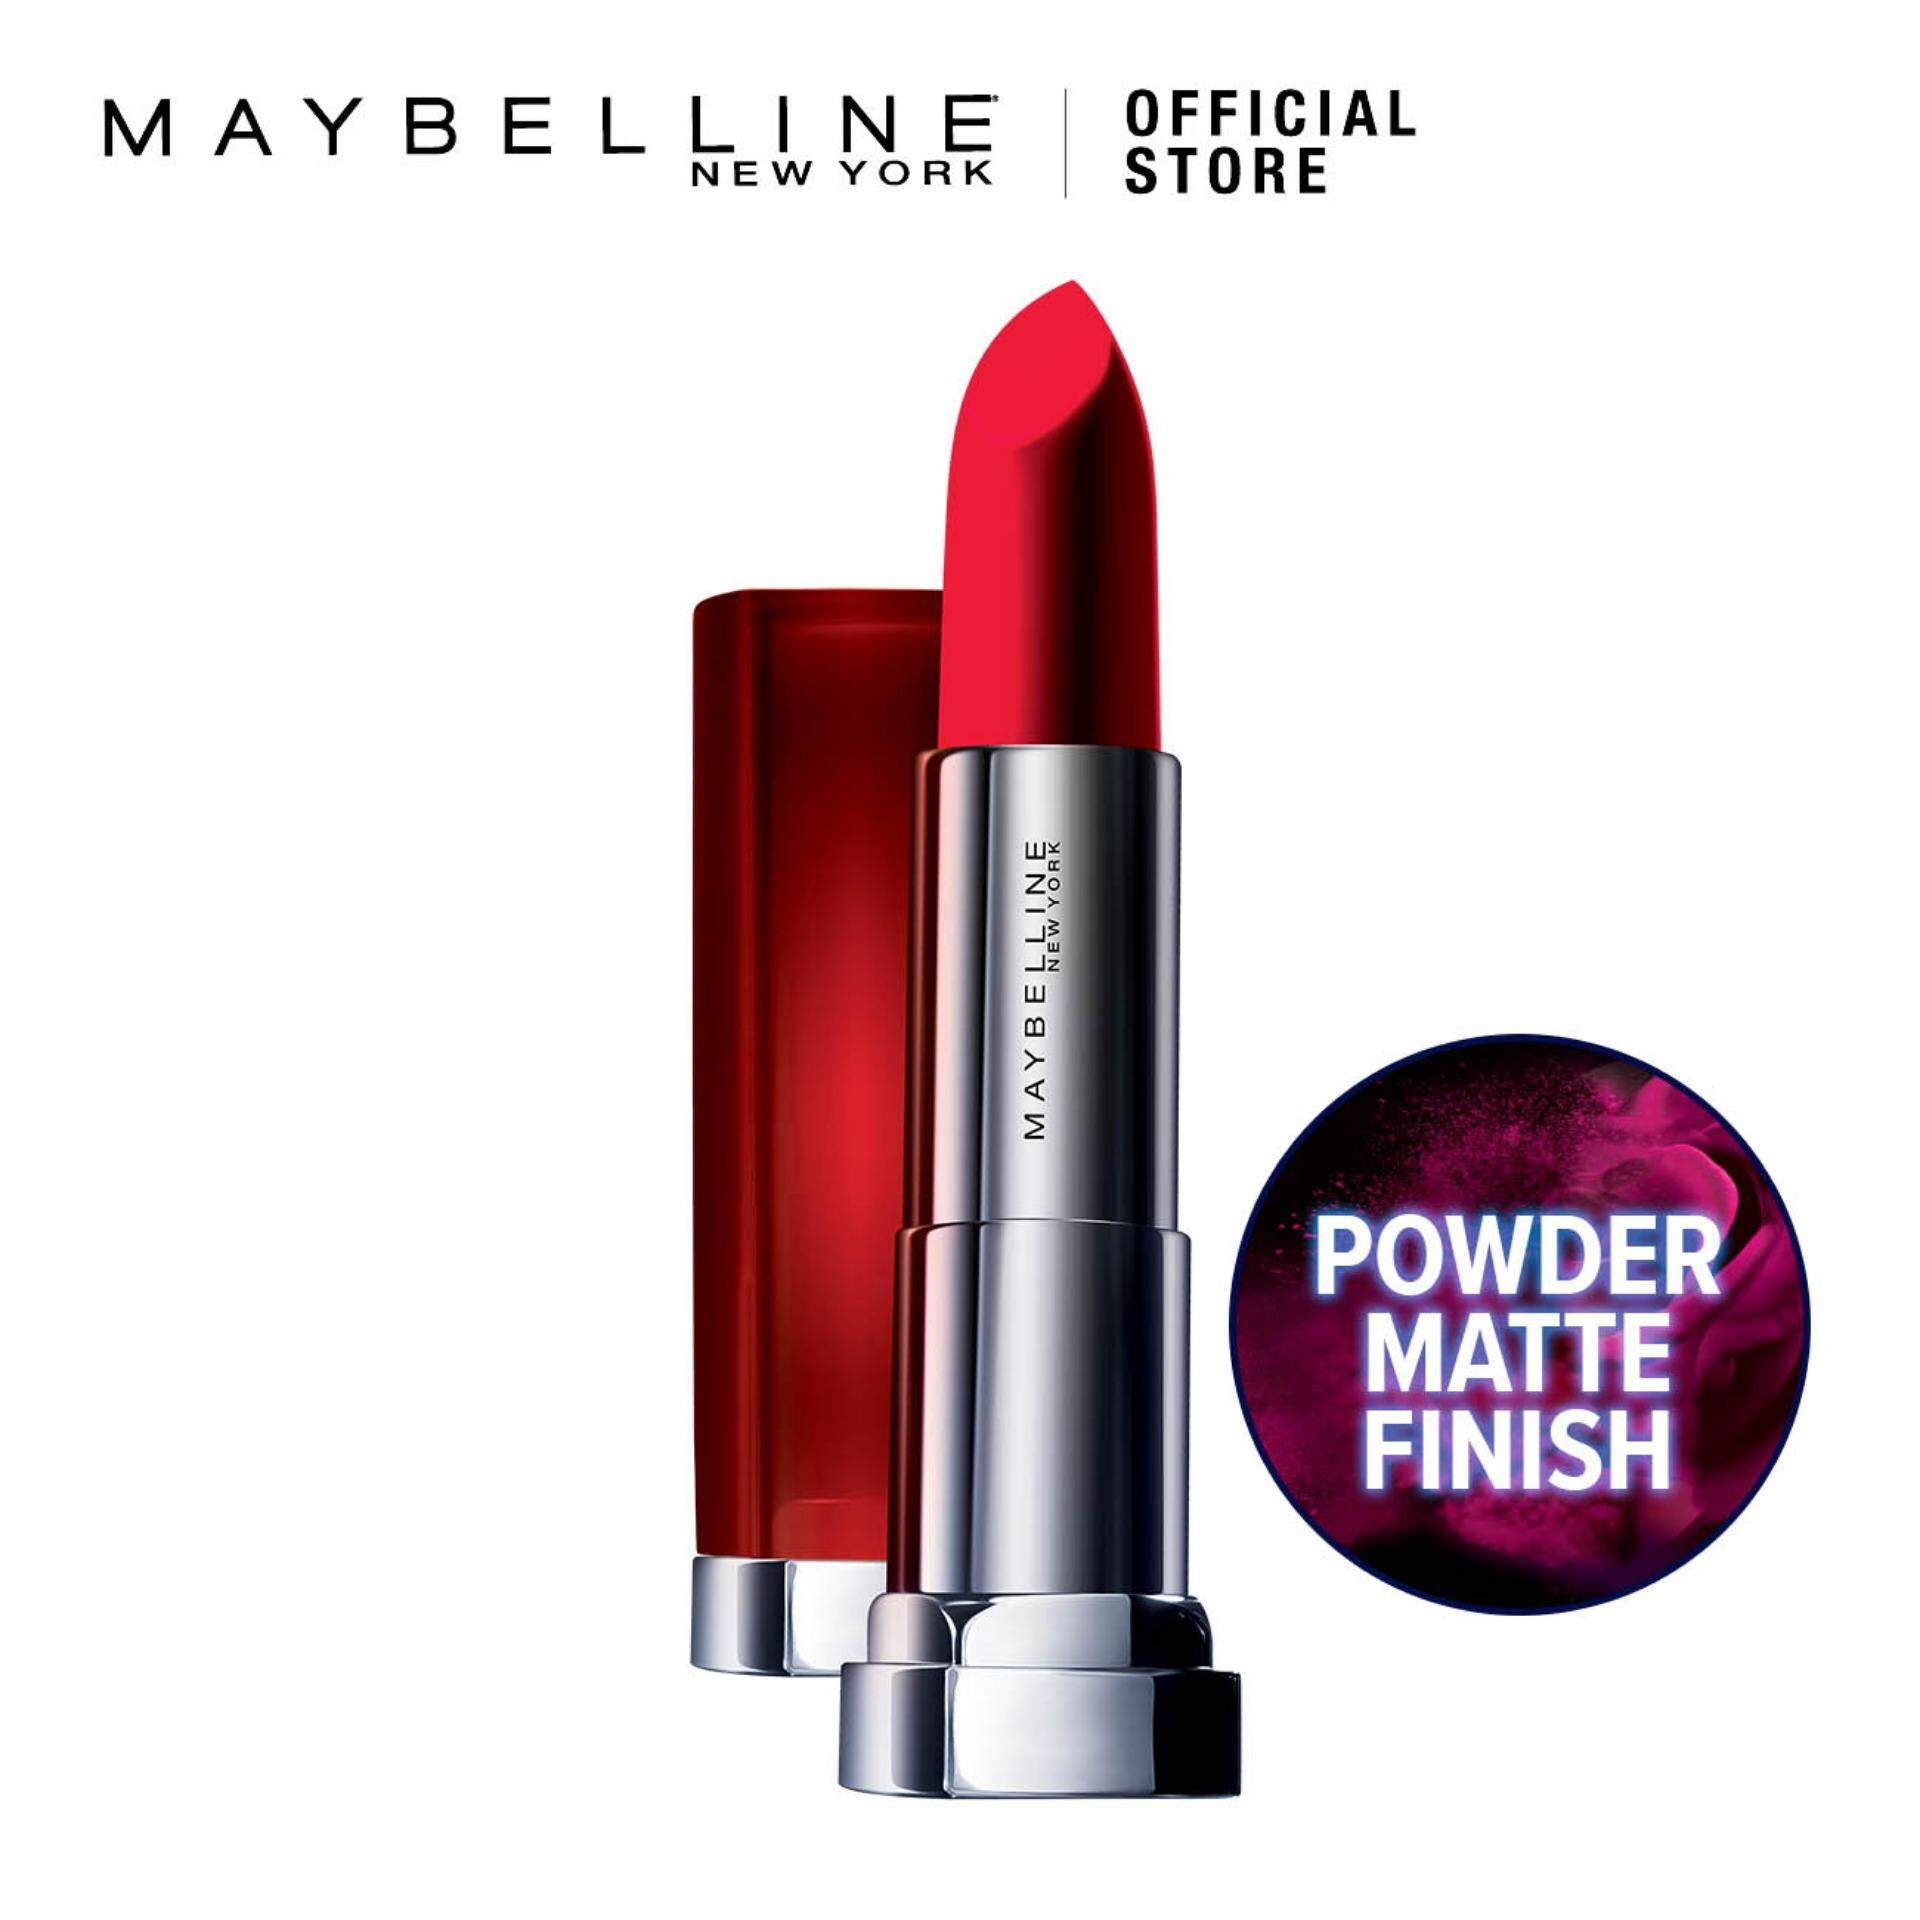 Maybelline Lips Makeups Lipsticks Price In Malaysia Best Color Sensational Vivid Matte Lipstick Powder Mattes